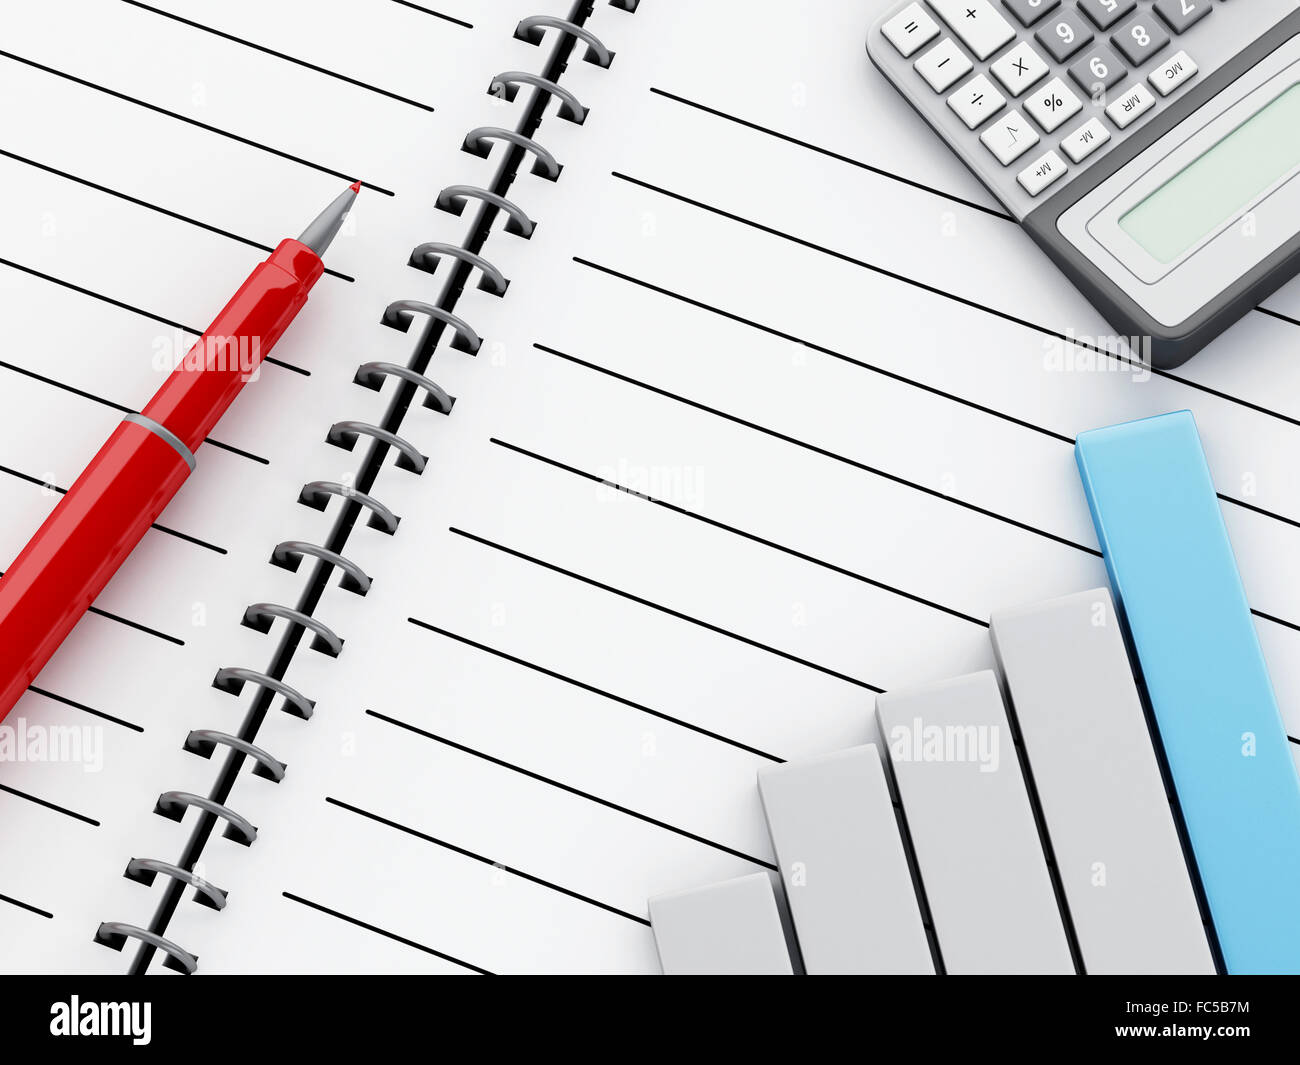 3d notepad with bar graph and office calculator stock photo 3d notepad with bar graph and office calculator ccuart Image collections